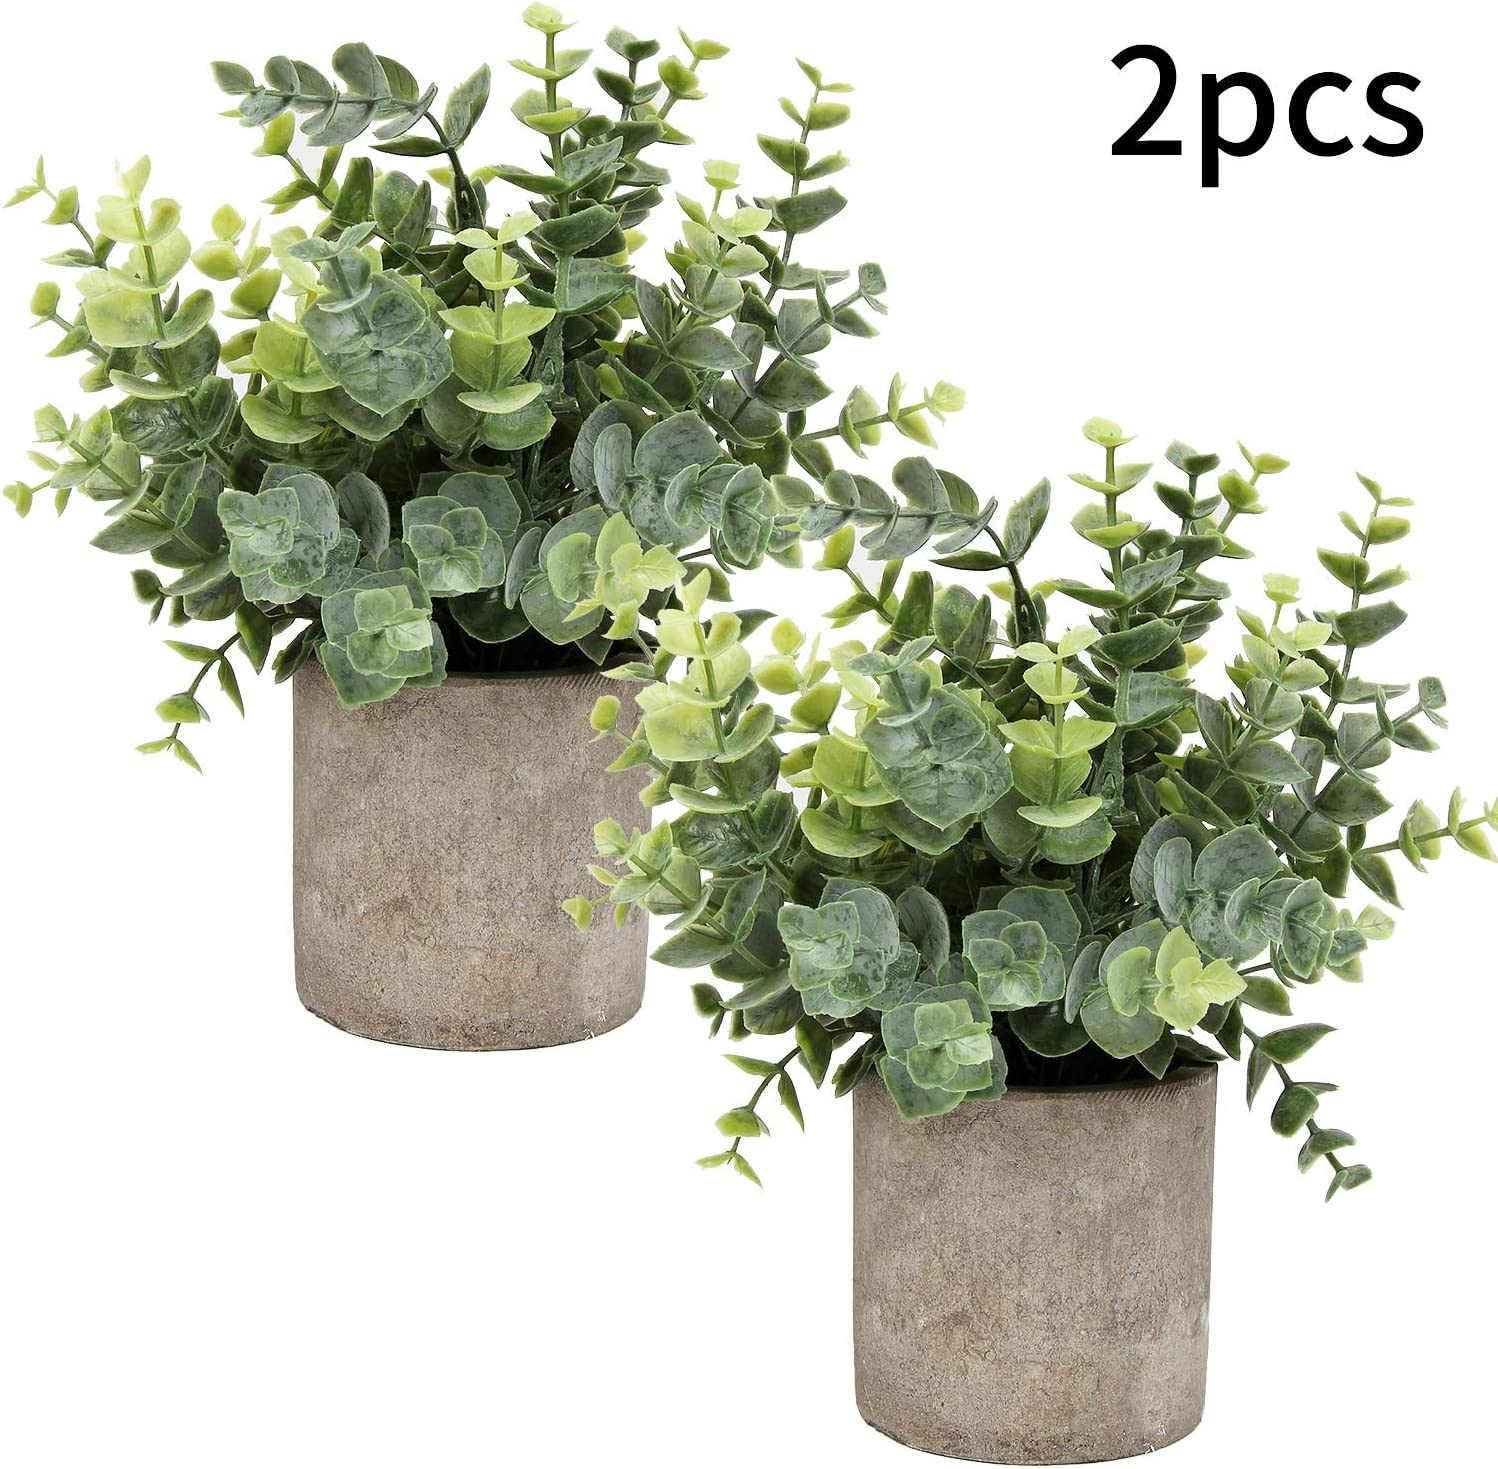 "Flojery Mini Potted Plants Artificial Eucalyptus Boxwood Rosemary Greenery in Pots Faux Potted Herbs Small House Plants 8.3""-9"" Tall for Indoor Greenery Tabletop Décor Centerpiece (Sprayed Eucalyptus)"